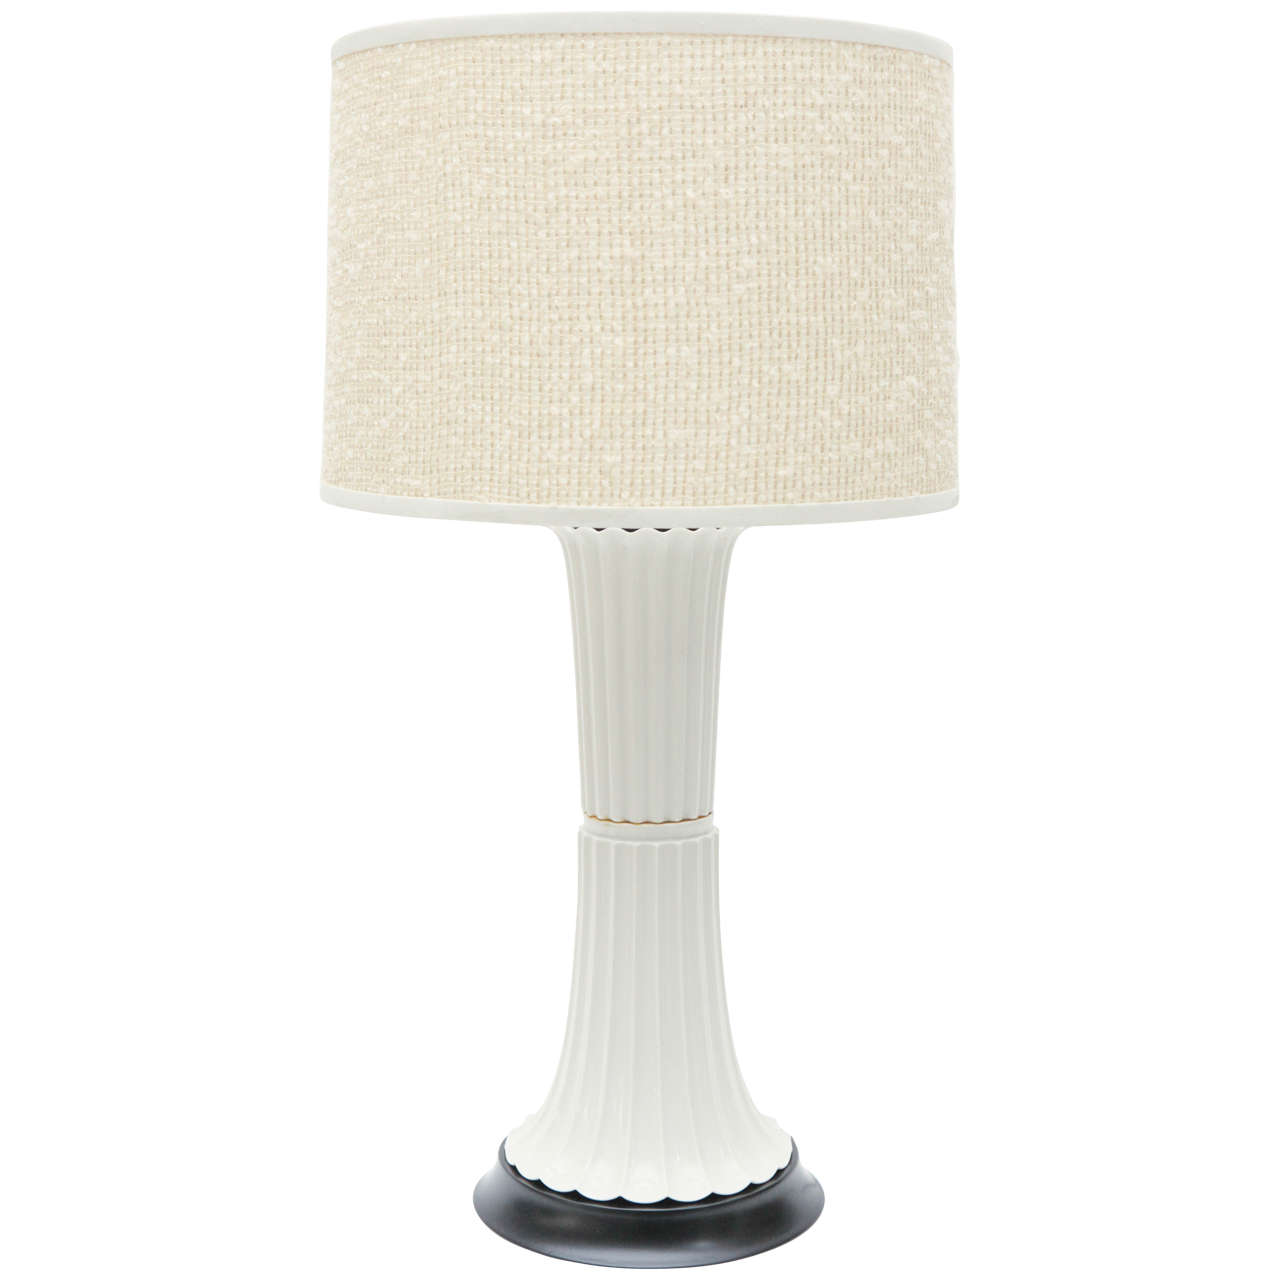 Custom-Made Table Lamp by William Haines